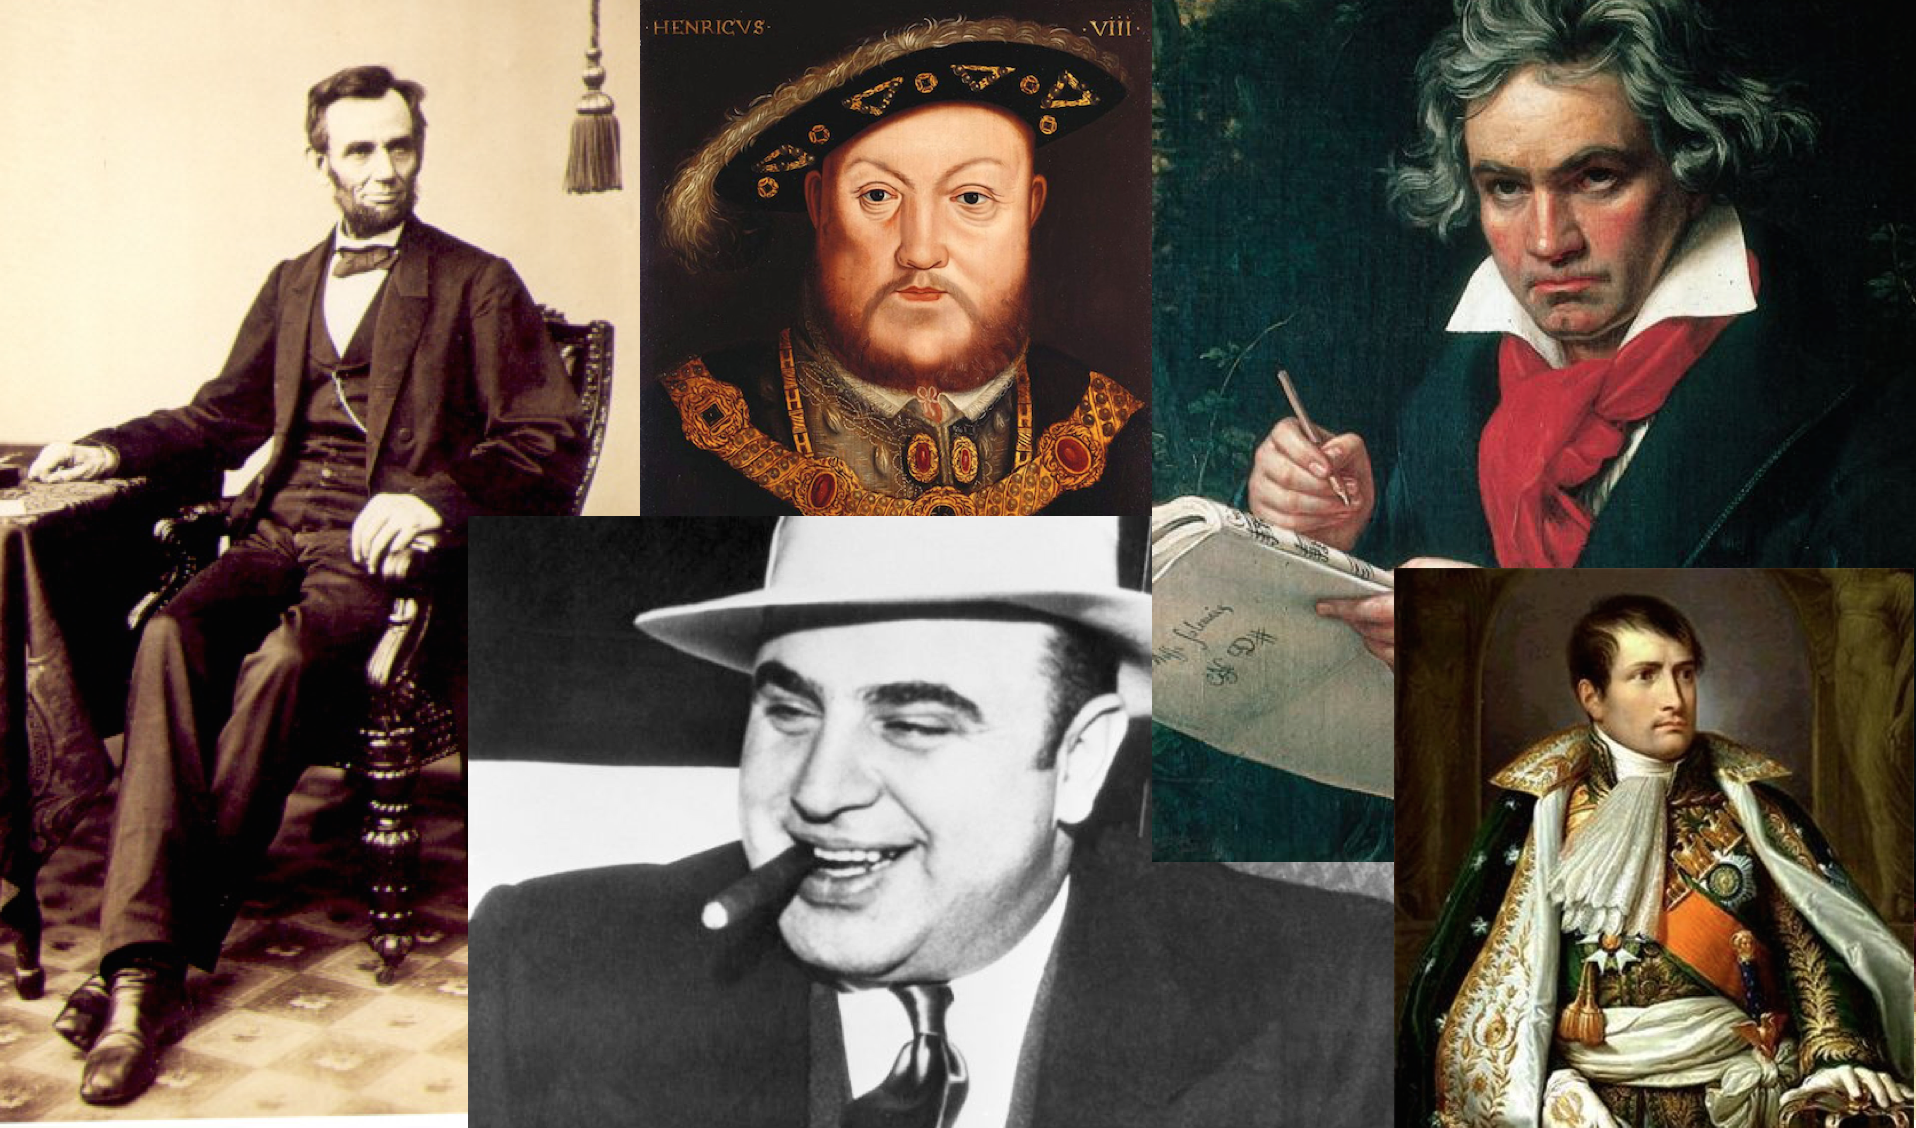 Historical figures who suffered from syphilis (clockwise from left to right): Abraham Lincoln, King Henry VIII, Ludwig van Beethoven, Napoleon Bonaparte and Al Capone